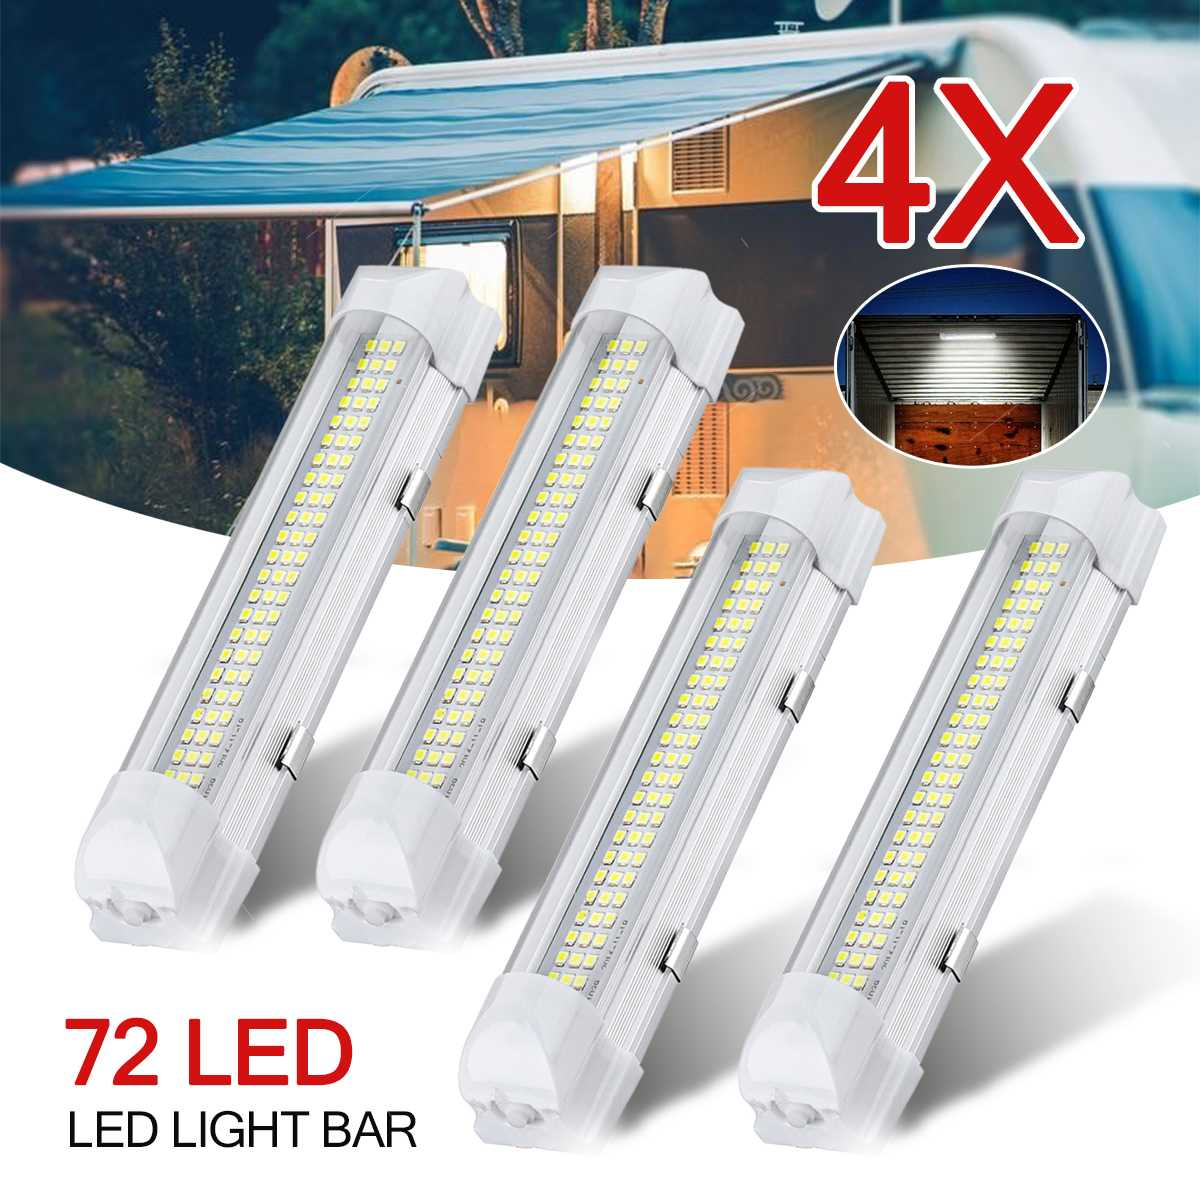 4X <font><b>12</b></font> - <font><b>80V</b></font> 72 <font><b>LED</b></font> Car Interior Inside Roof Top RV Light Lights Lamp Bar Strip With Switch Universal For Car Truck Lorry image